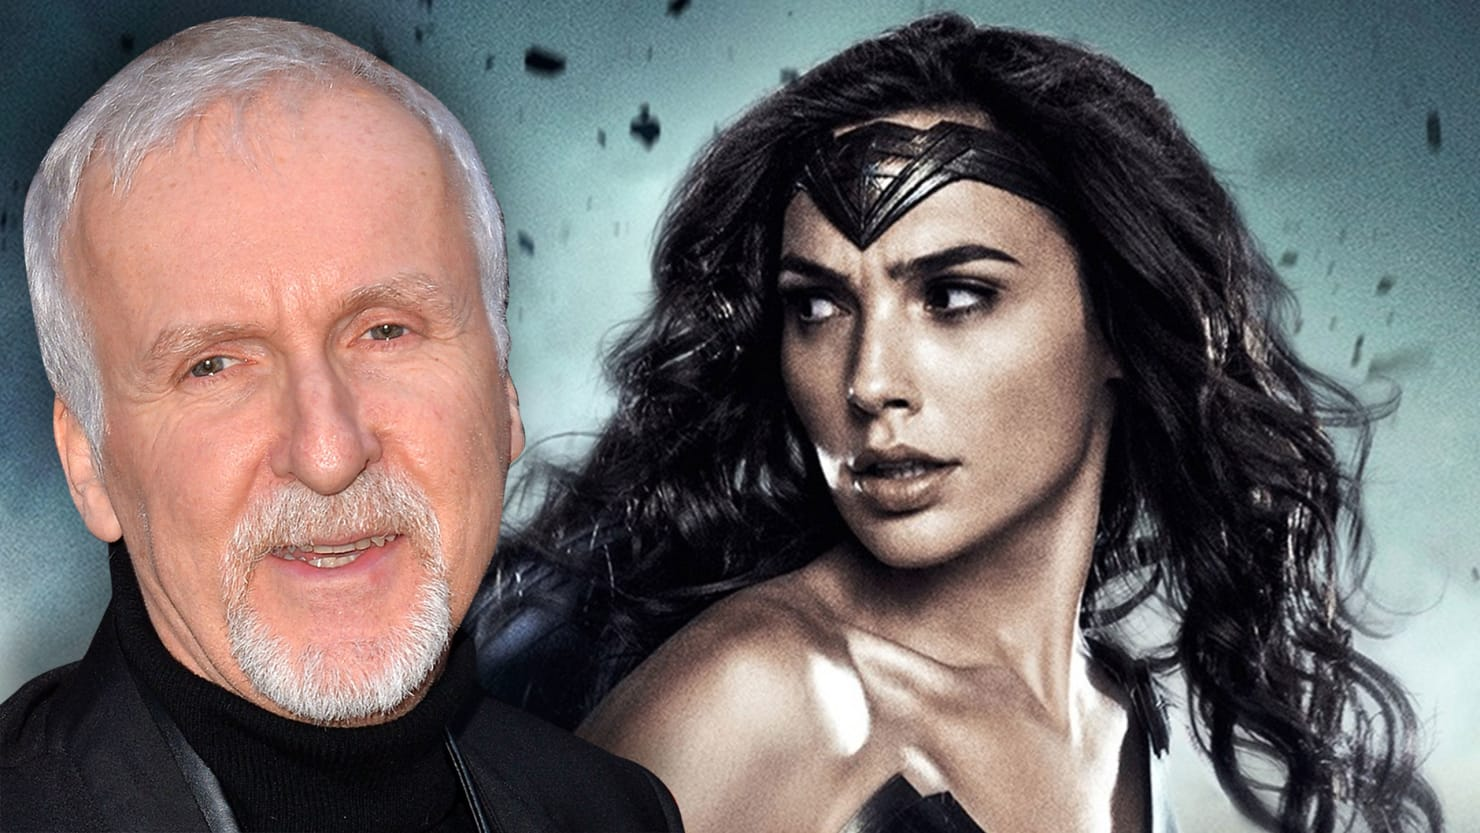 We Need to Talk About James Cameron's Foolish 'Wonder Woman' Slander